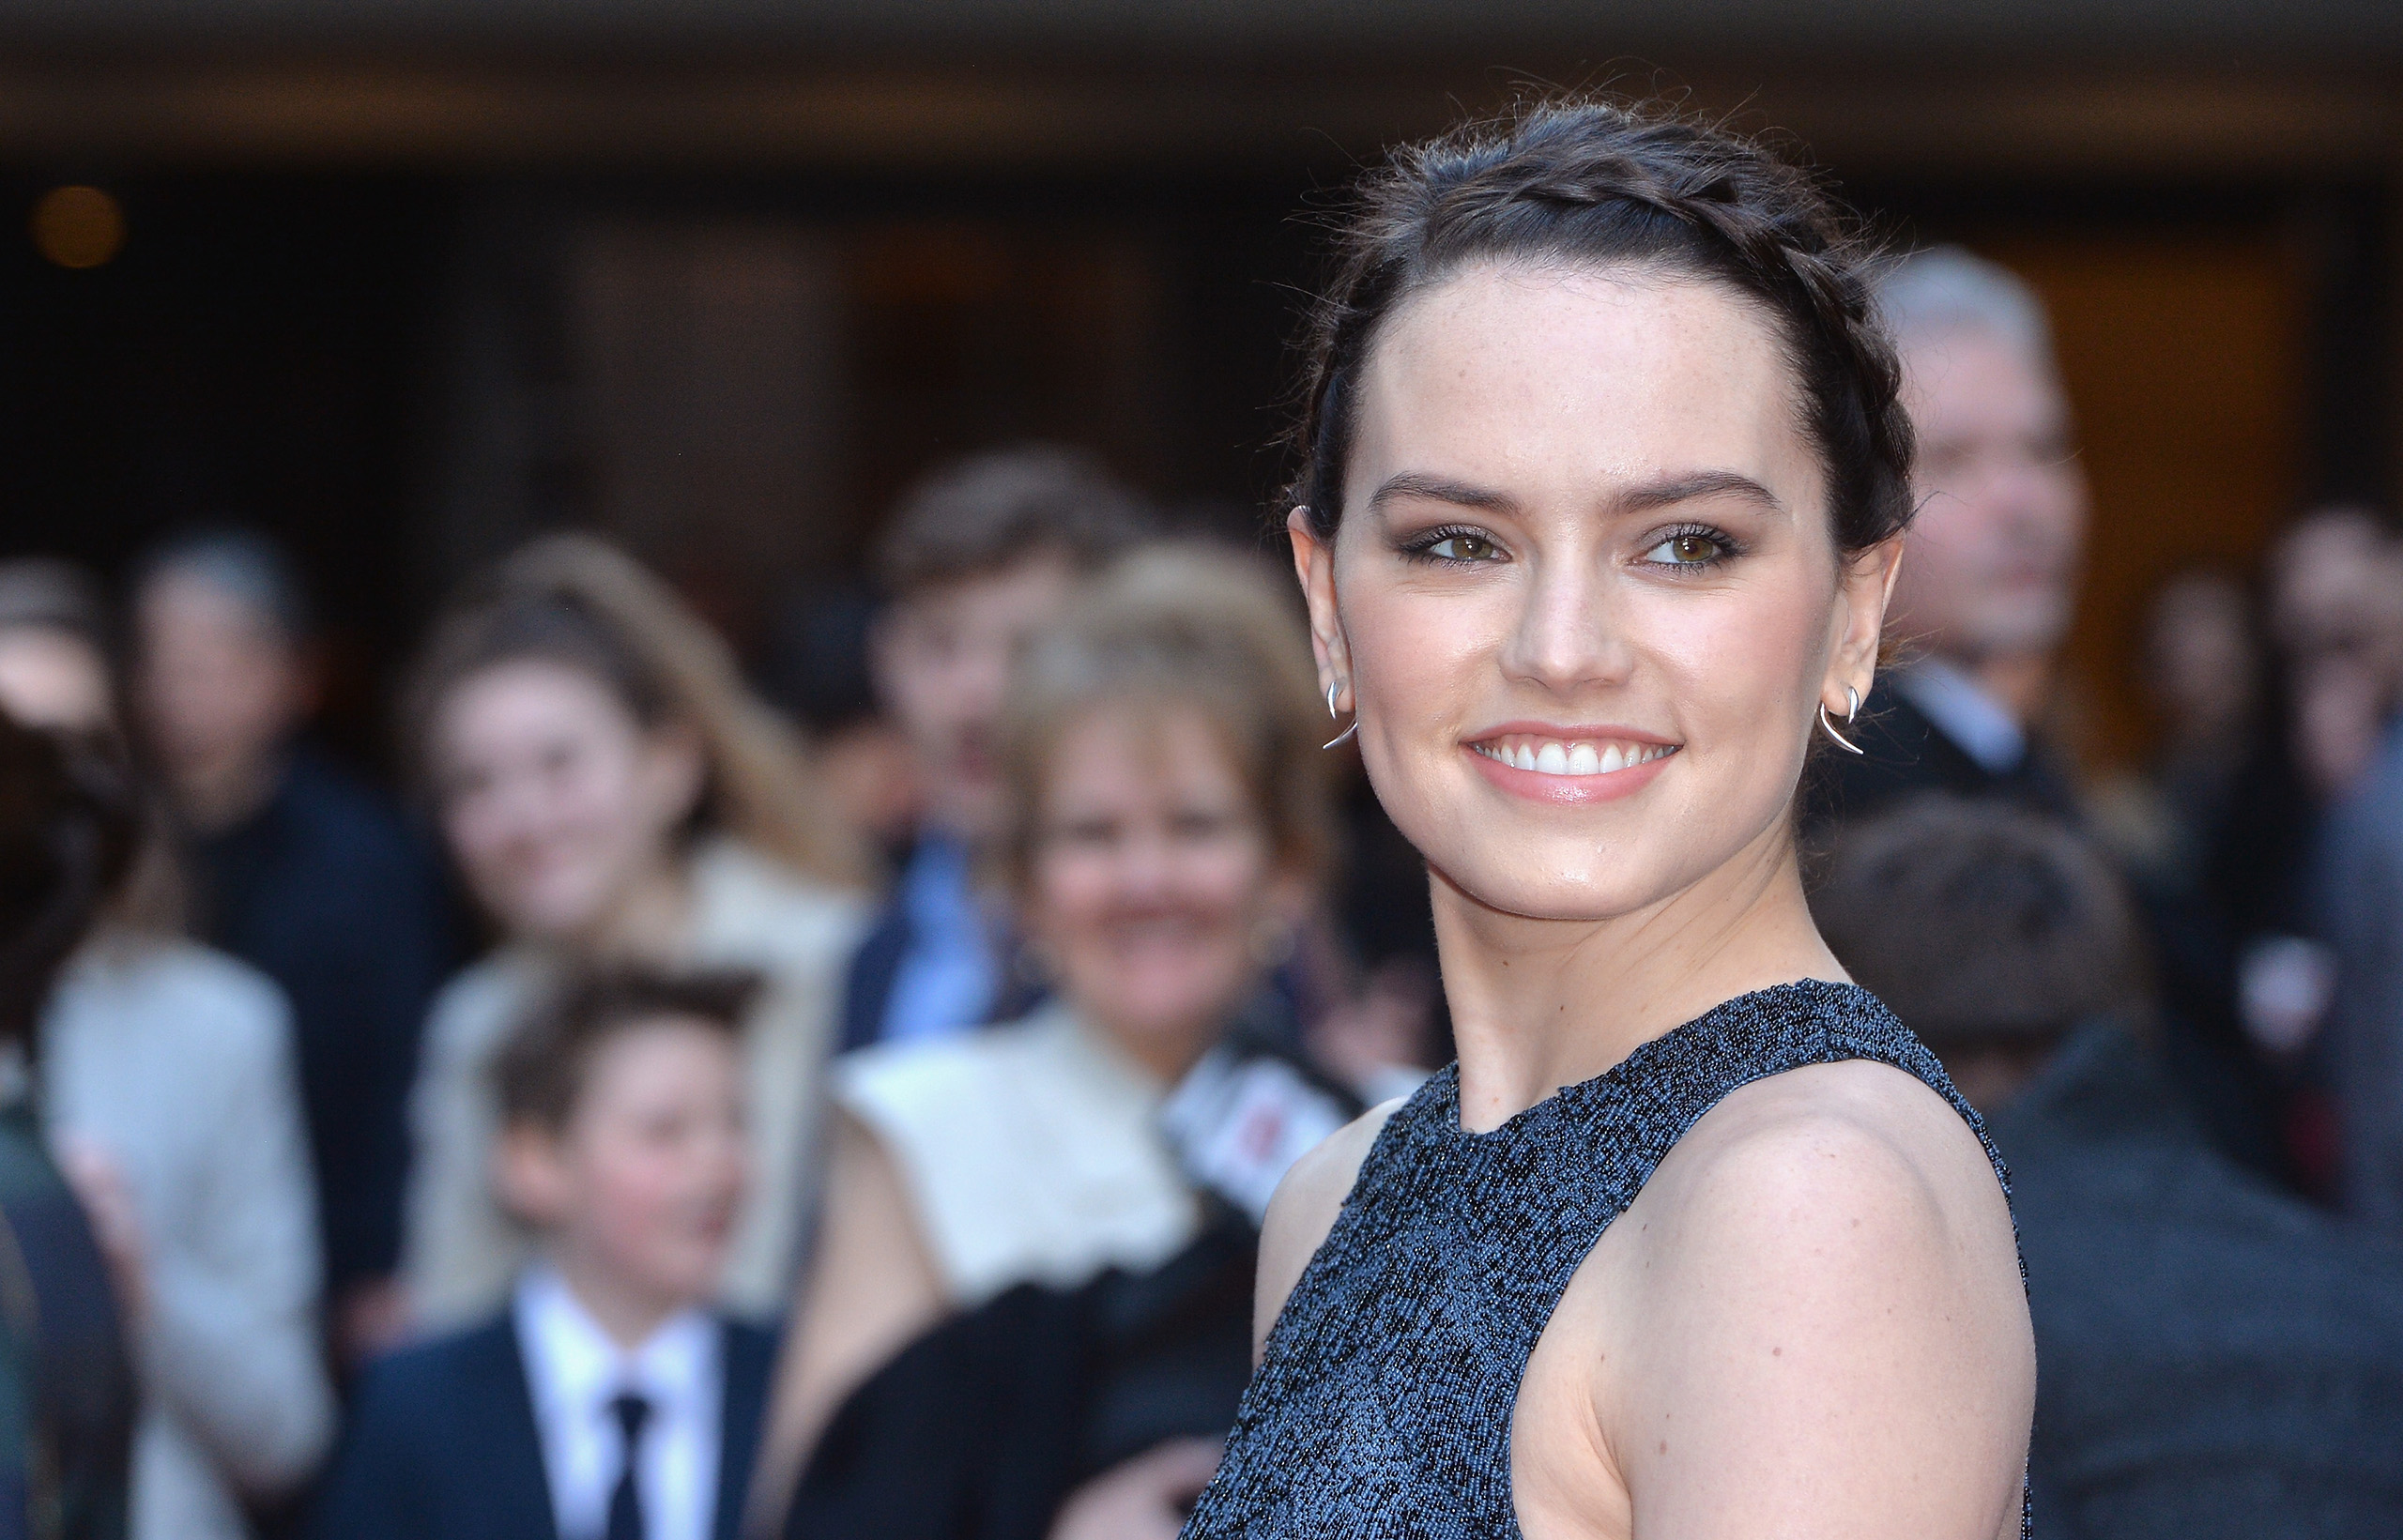 Daisy Ridley attends the Jameson Empire Awards 2016 in London on March 20, 2016.